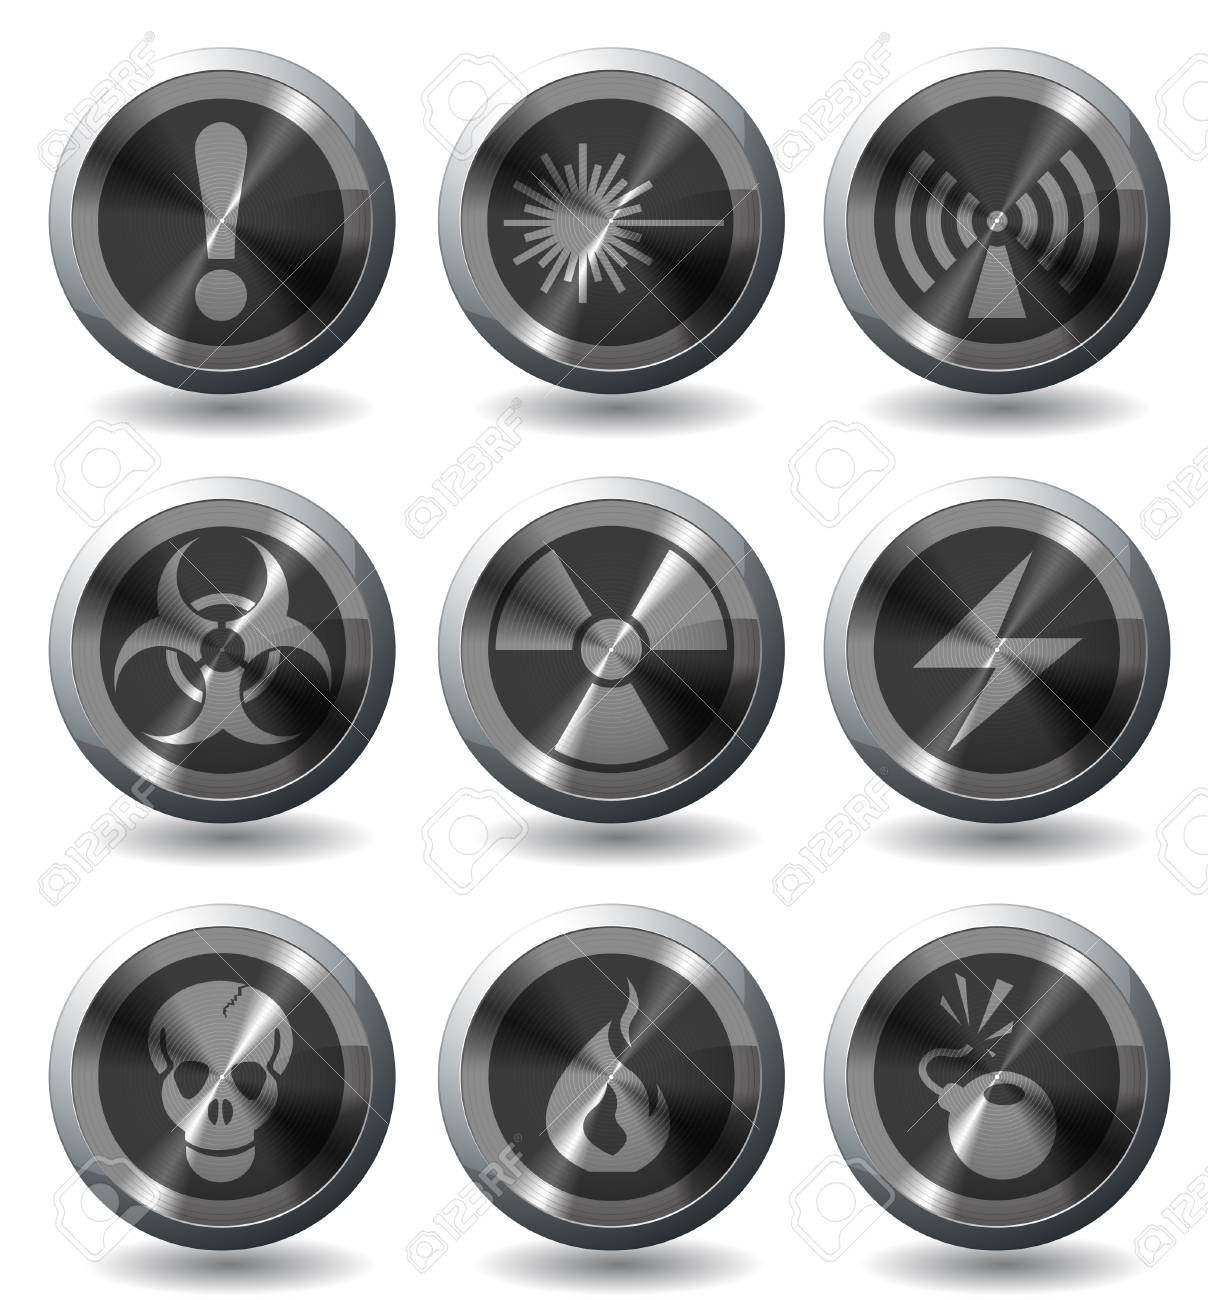 Hazard Sign Icons Stock Vector - 28642058